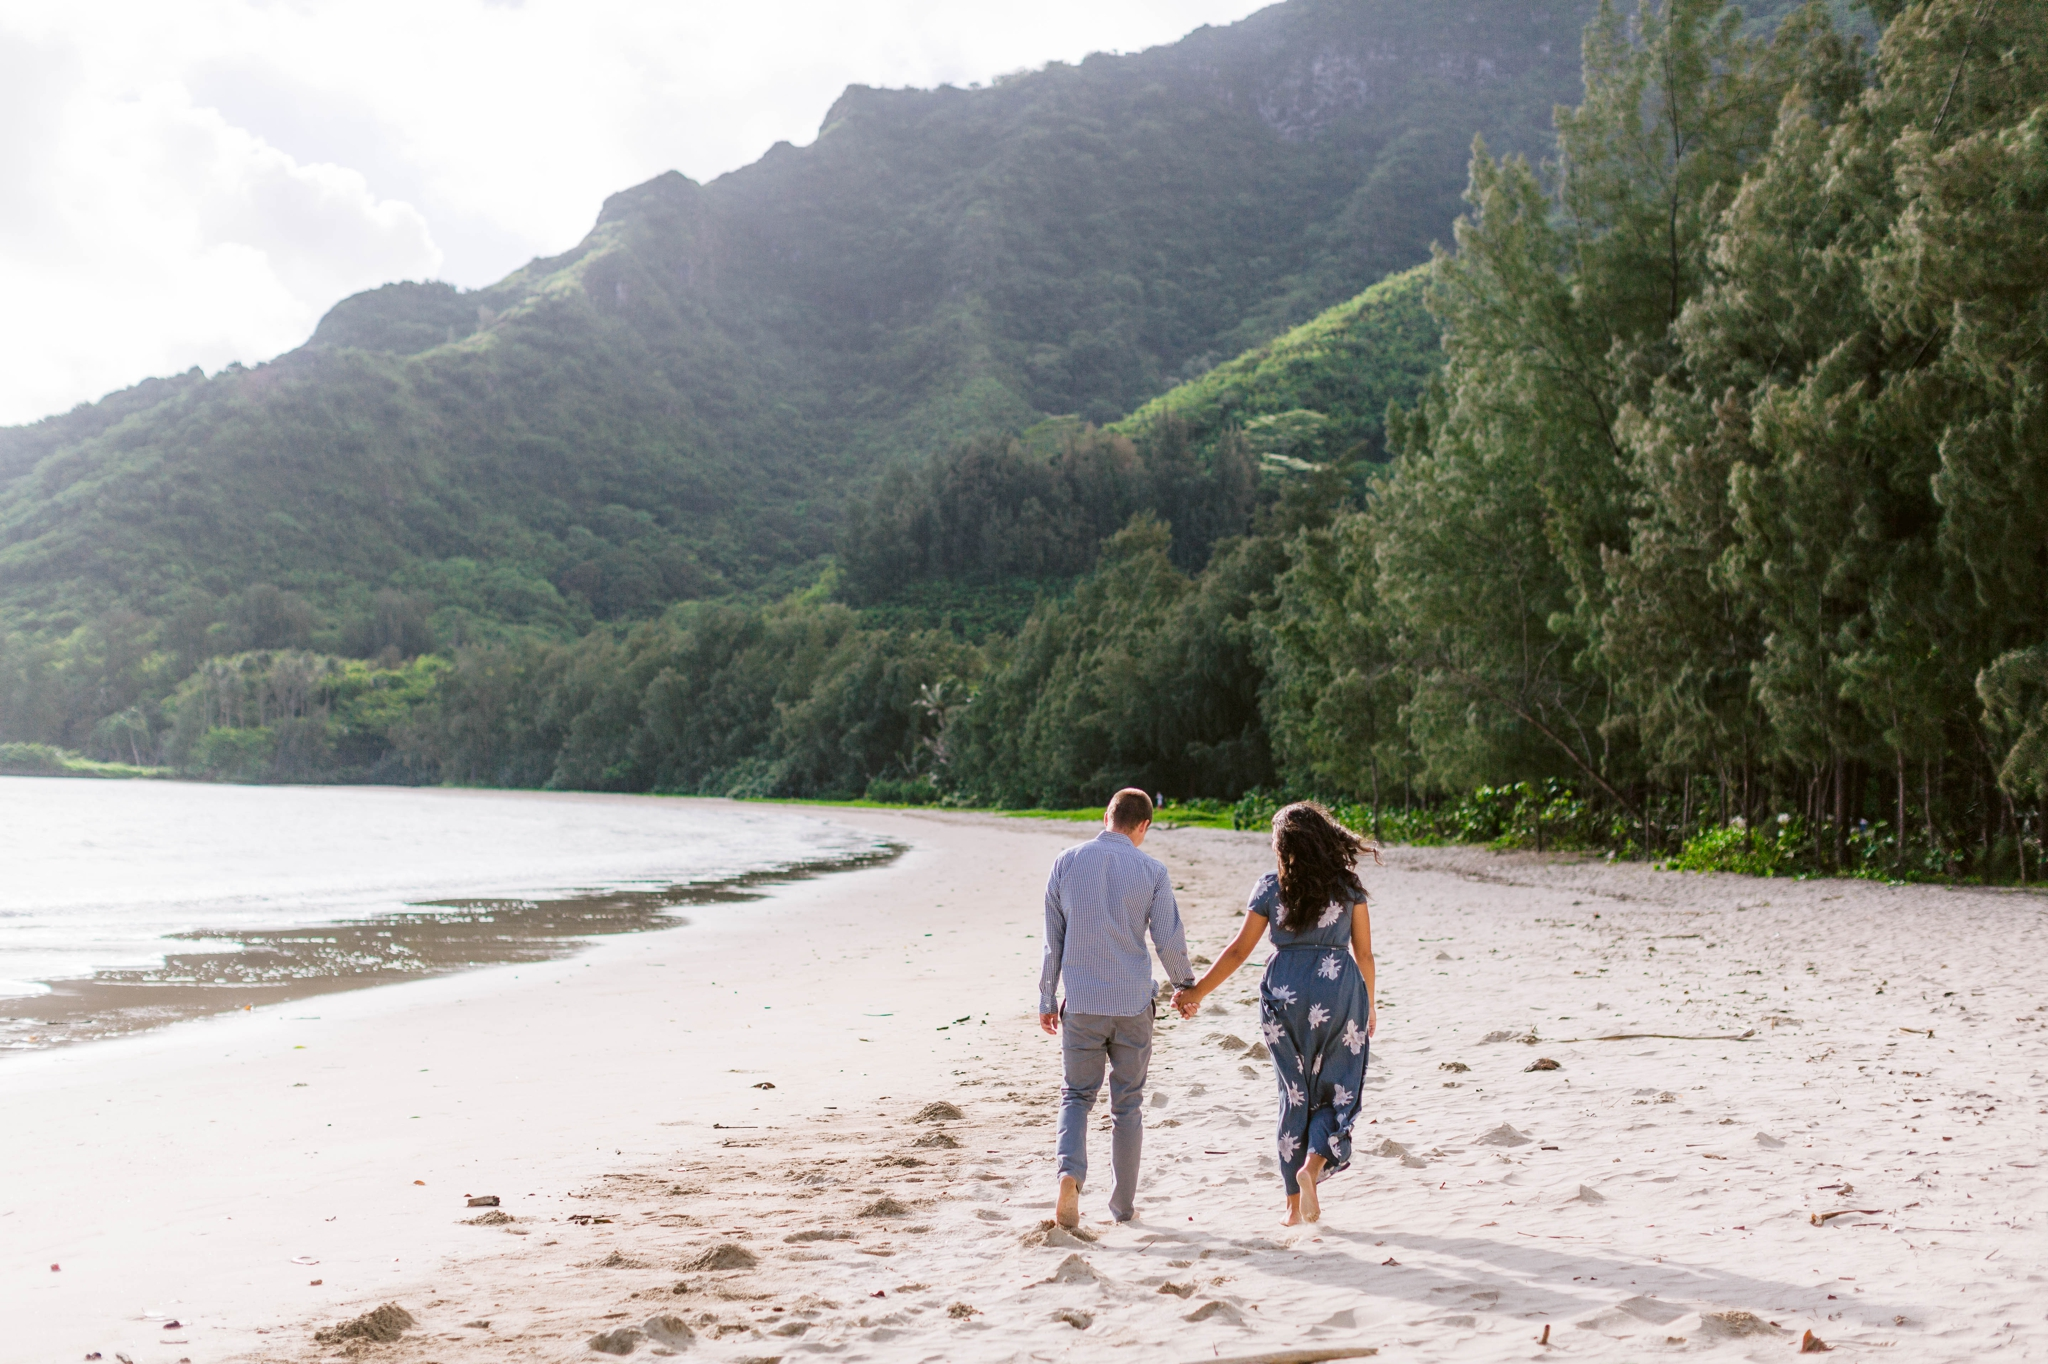 Couple Walking on the beach - Rilee + Max - Beach Engagement Session at Kahana Bay in Kaaawa, HI - Oahu Hawaii Wedding Photographer